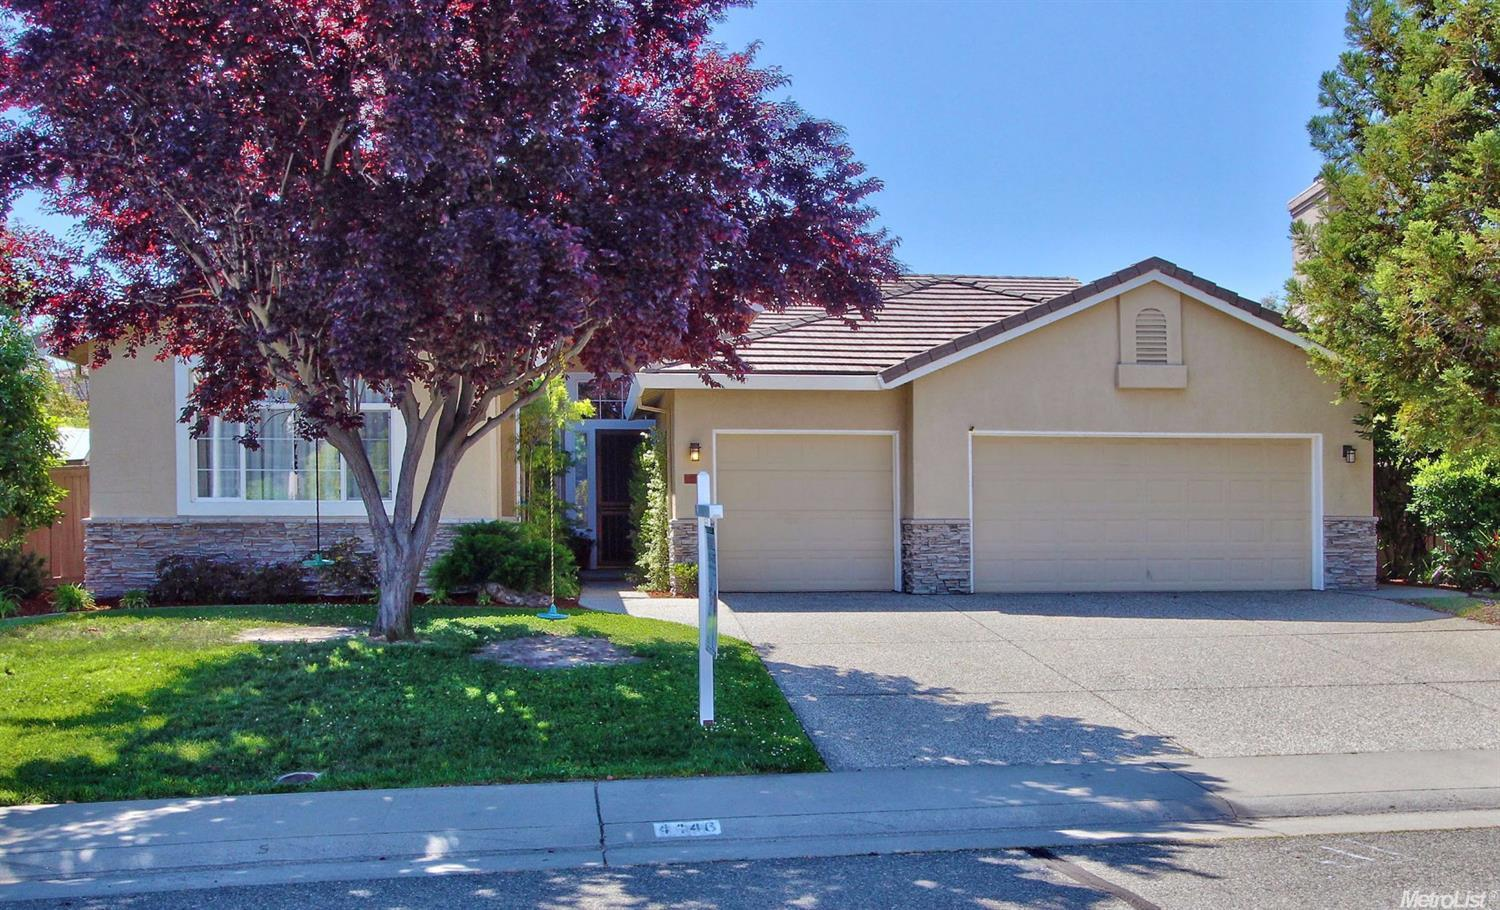 4446 Pebble Beach Rd, Rocklin, CA